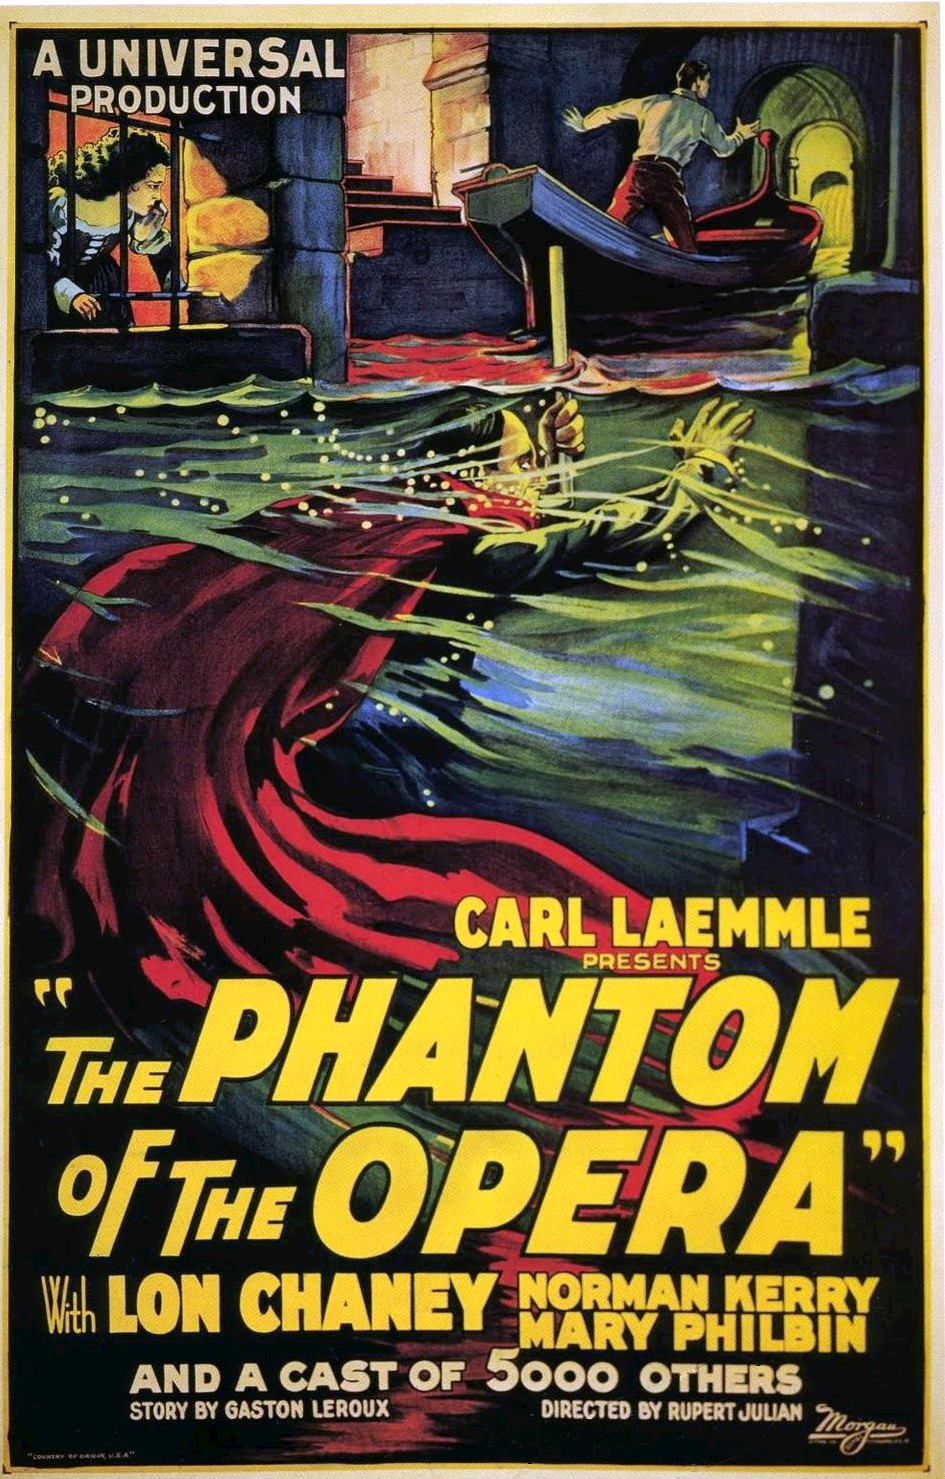 Poster for the 1925 film The Phantom of the Opera.